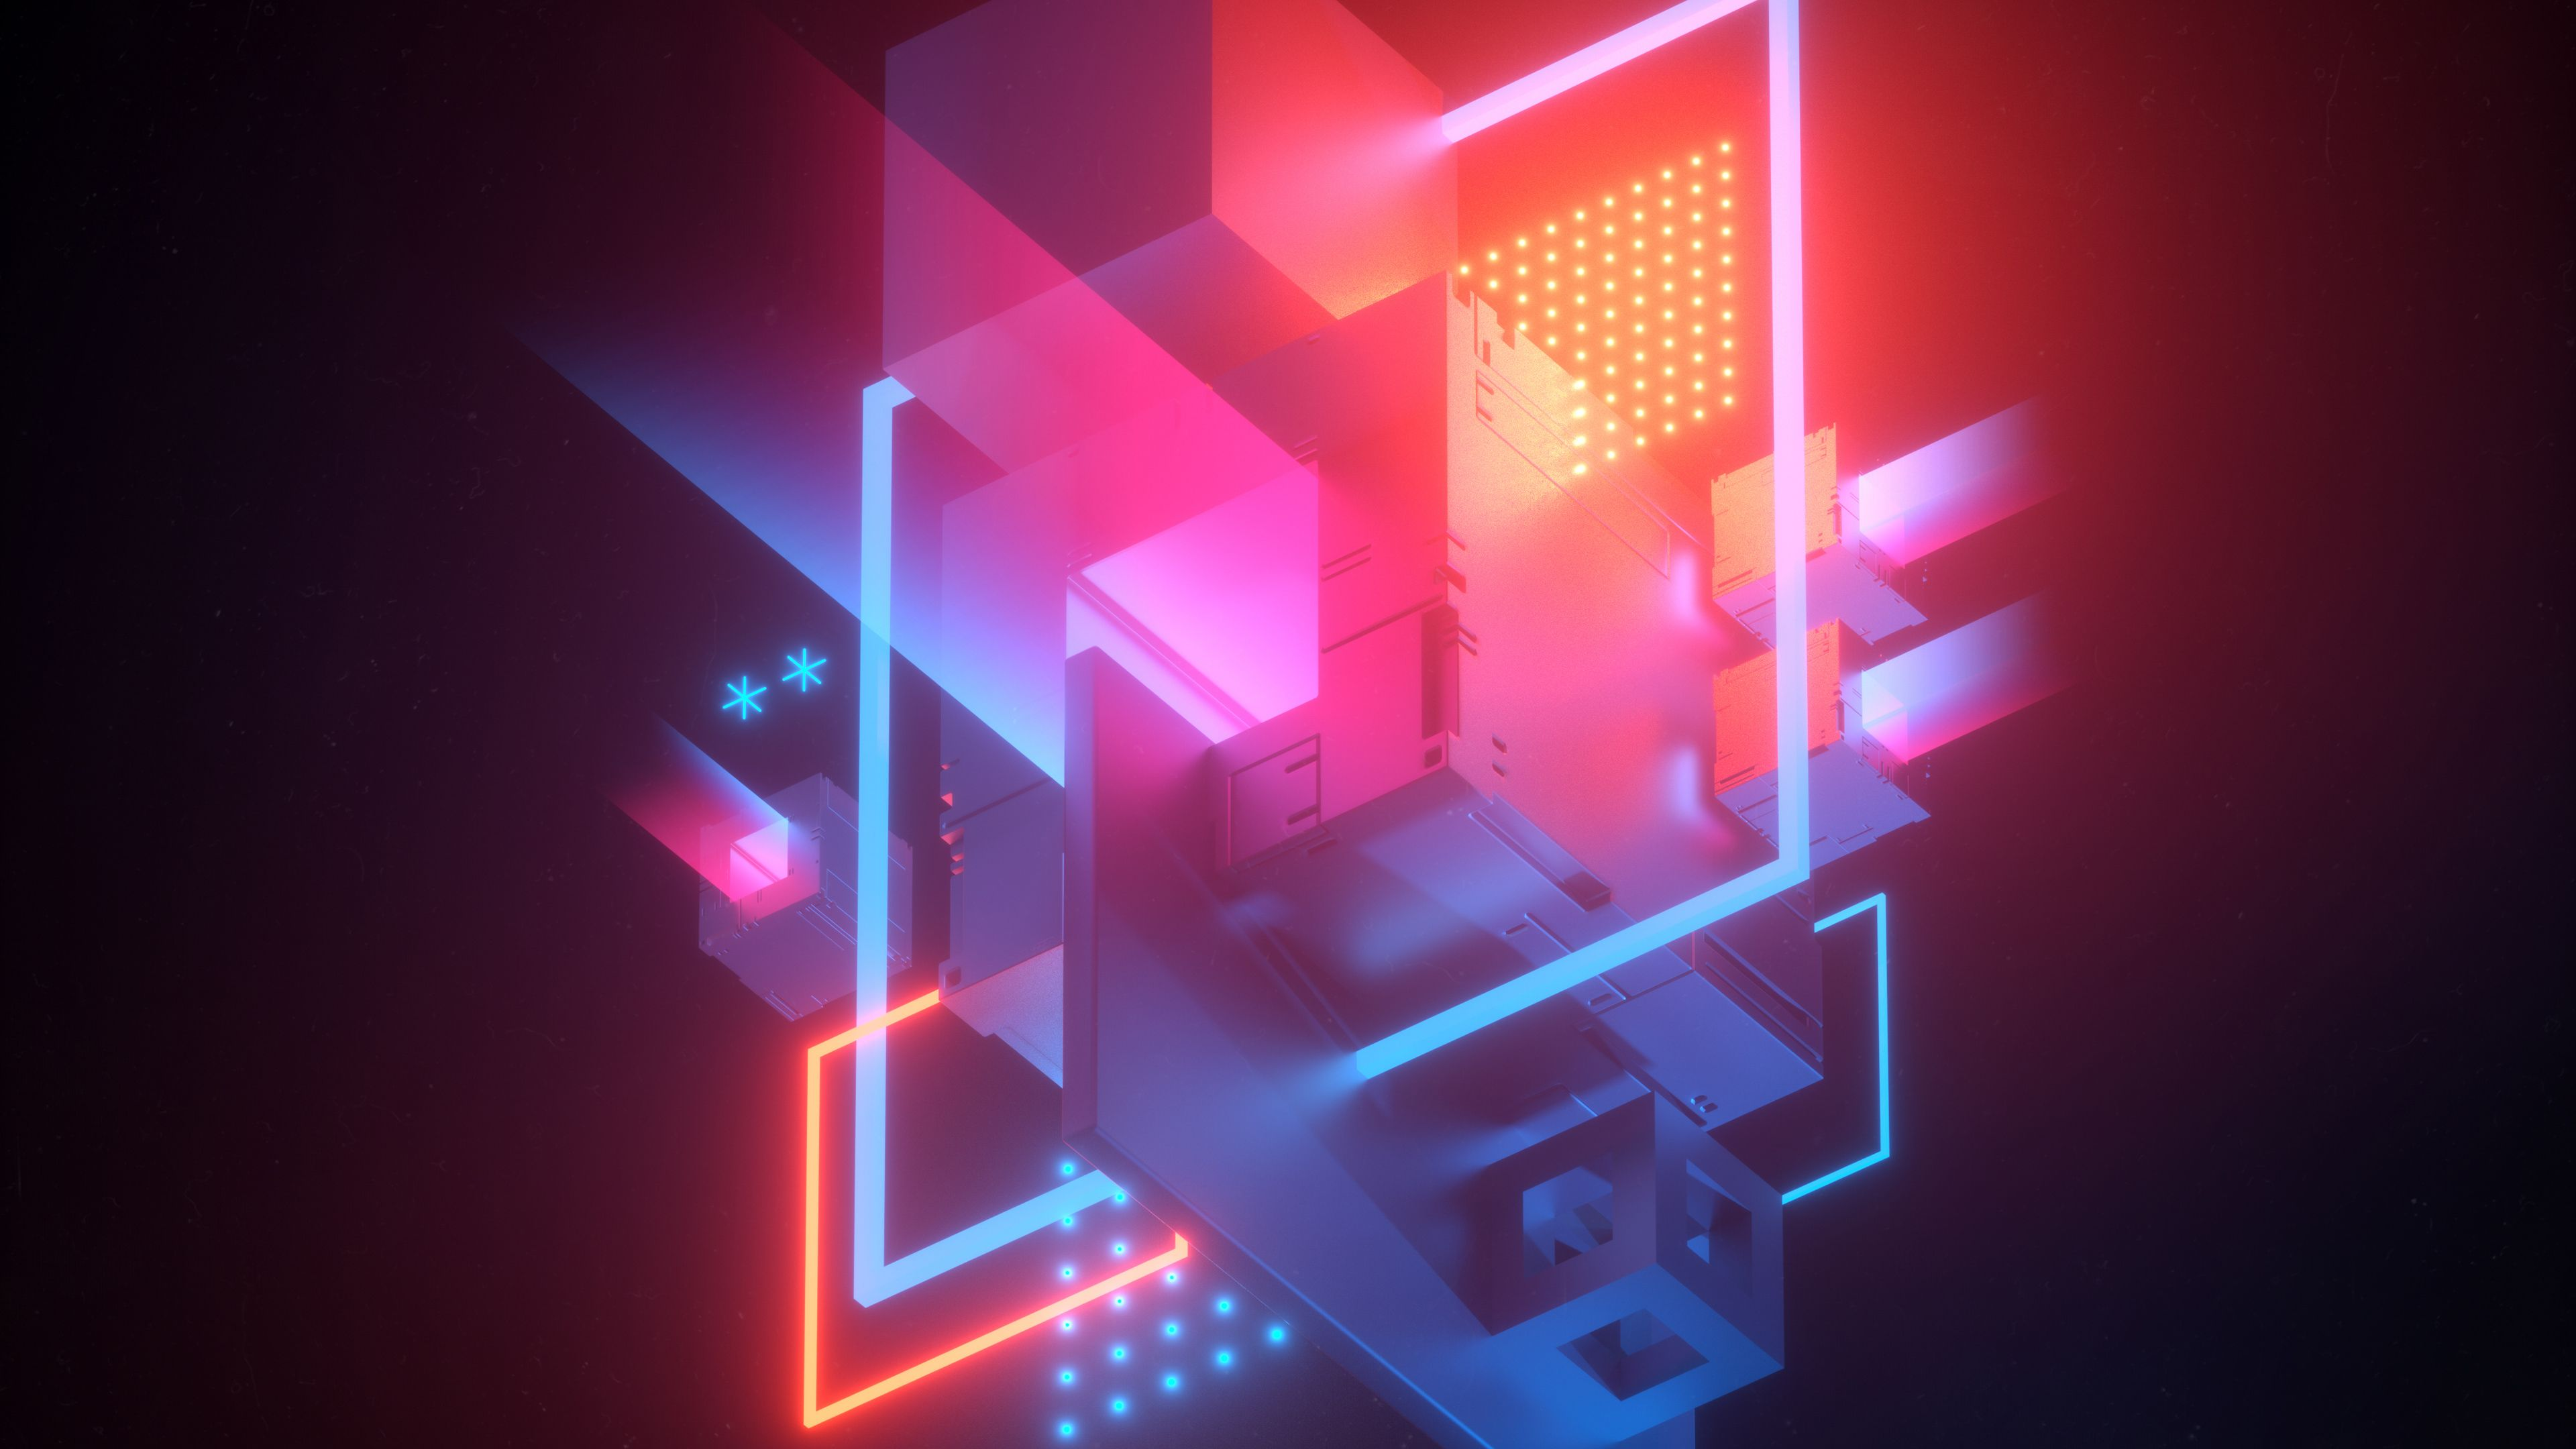 Abstract Conflict 4k Hd Wallpapers Digital Art Wallpapers Behance Wallpapers Abstract Wallpapers 4 Cool Wallpapers 4k Abstract Wallpapers Behance Wallpaper